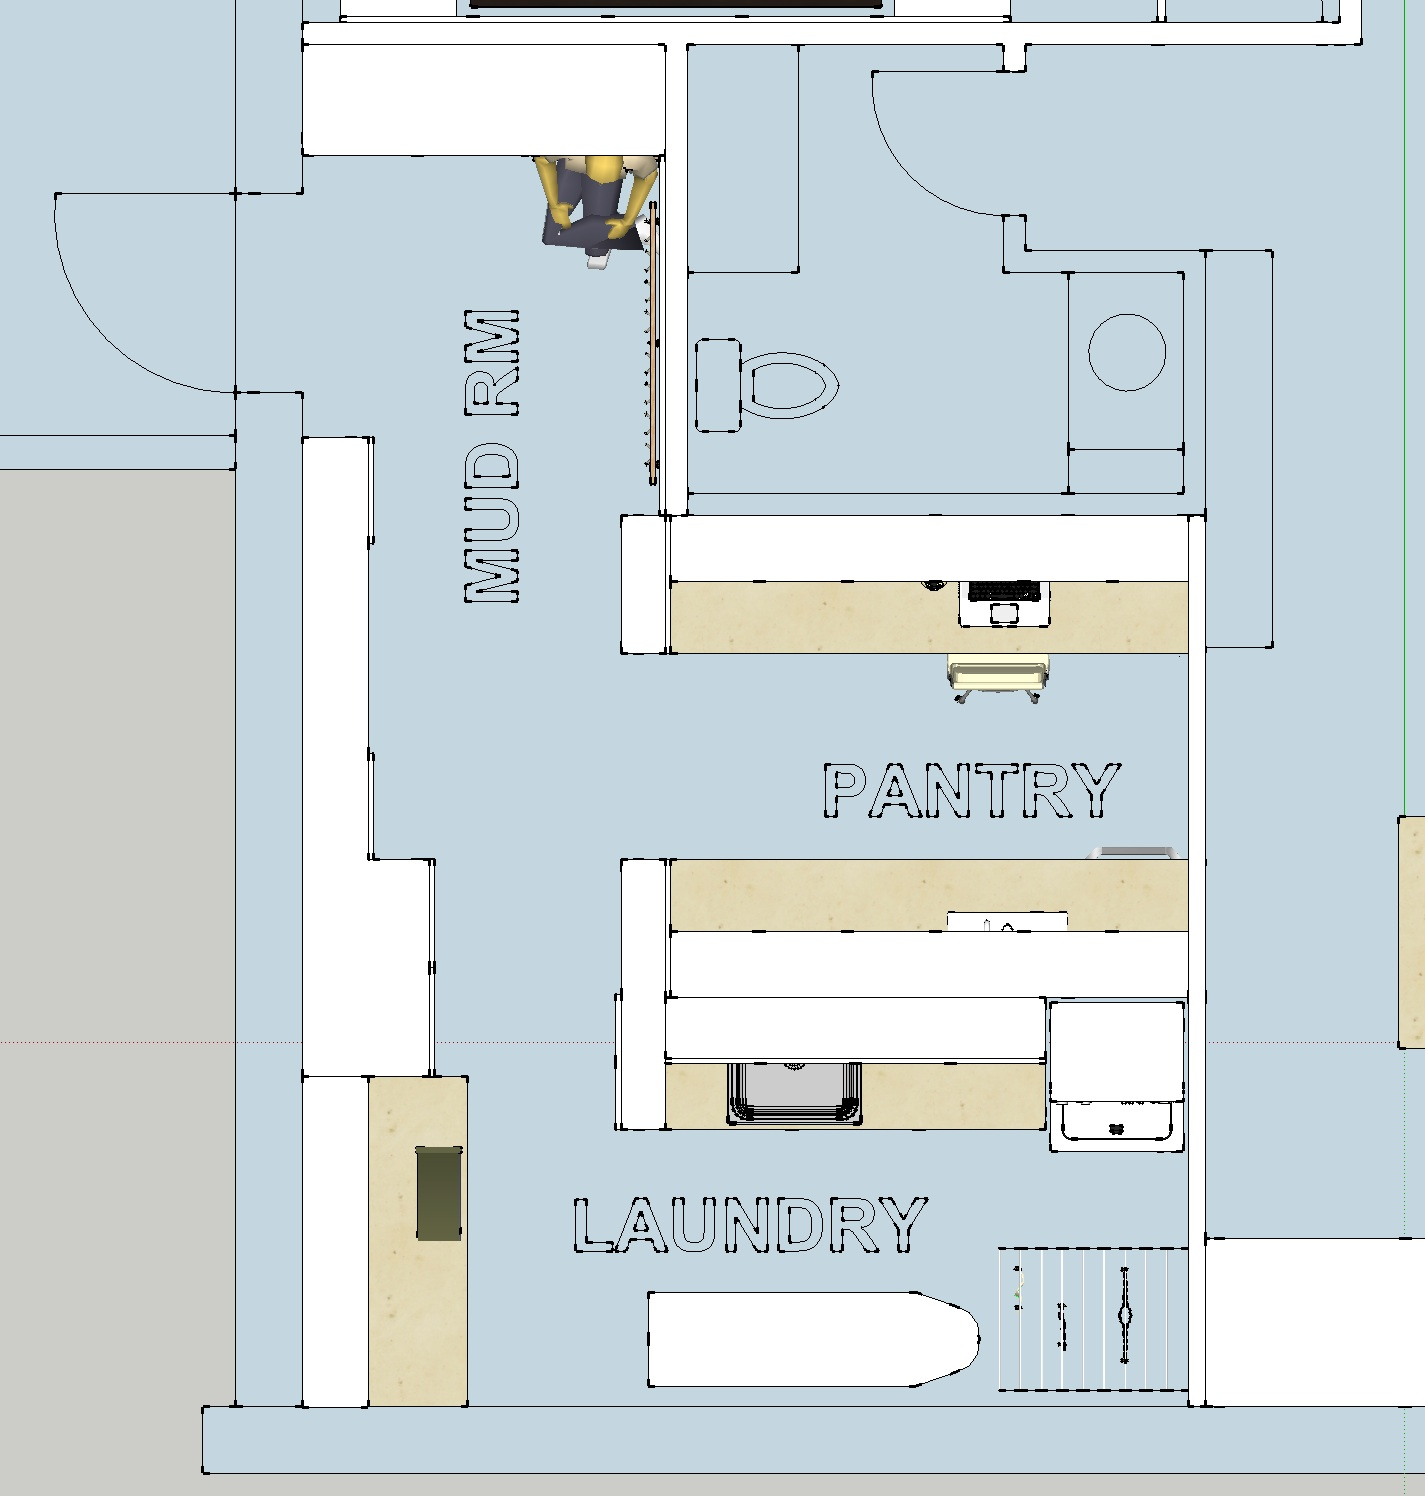 parankewich manor walkout level generation suite on small laundry room floor plans id=94433